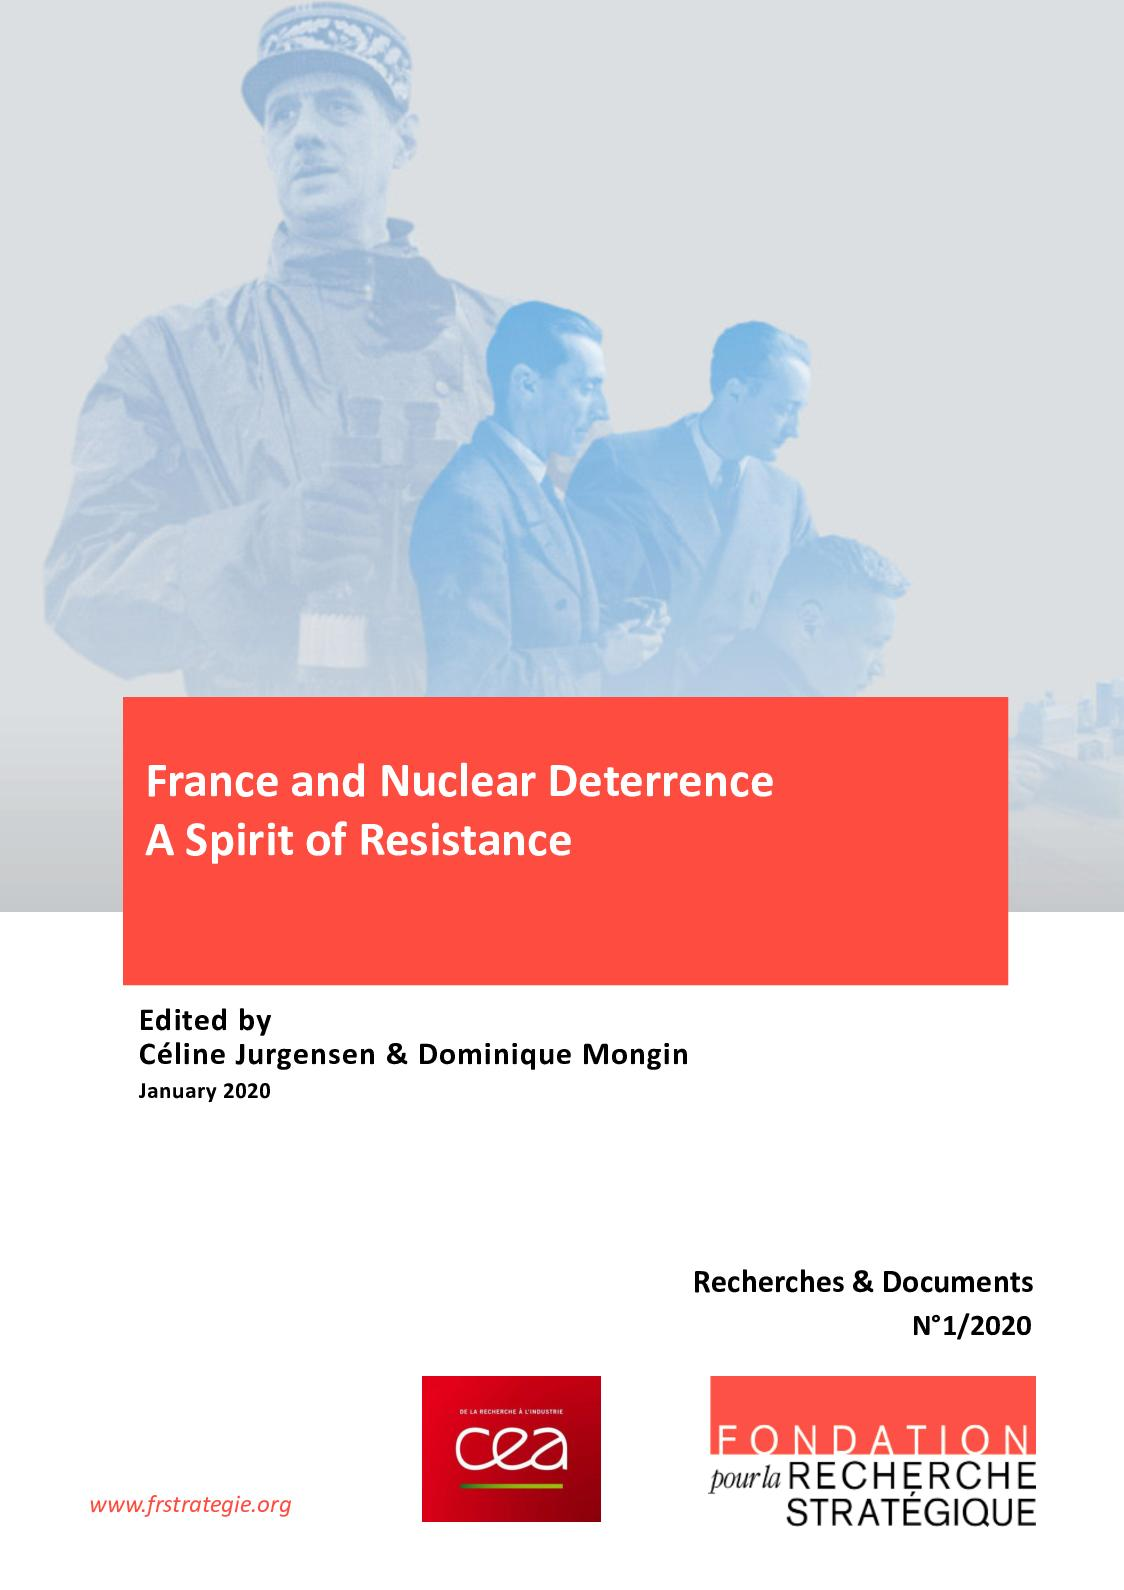 foto de Calaméo - France And Nuclear Deterrence - A Spirit of Resistance